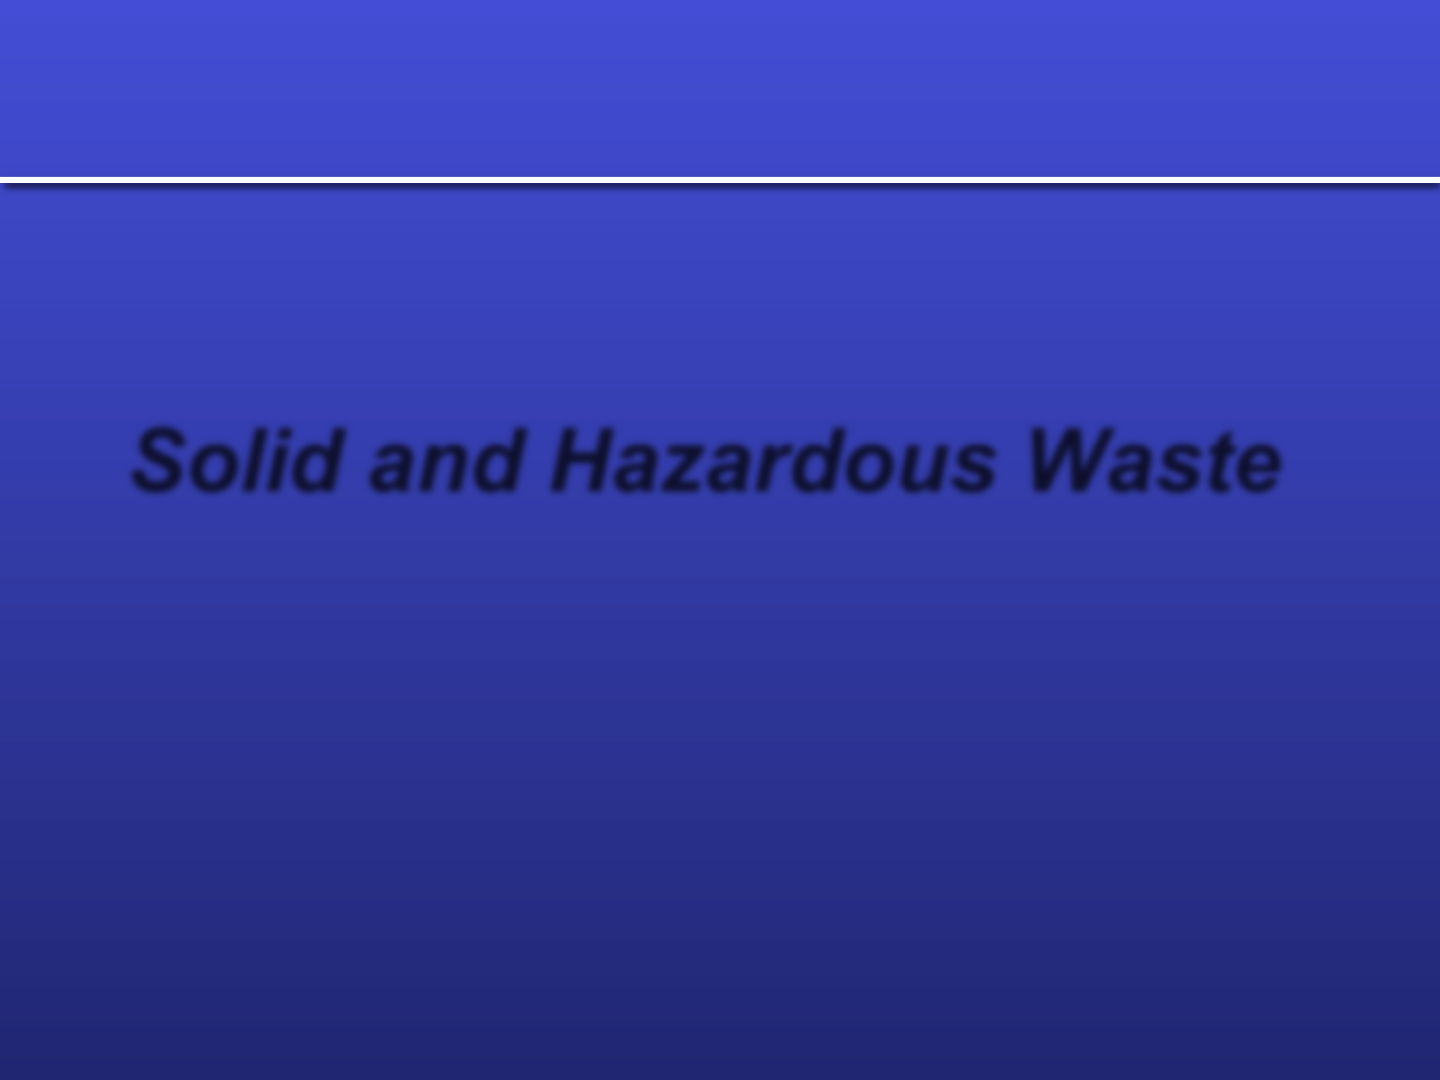 download hazardous waste management ppt for free